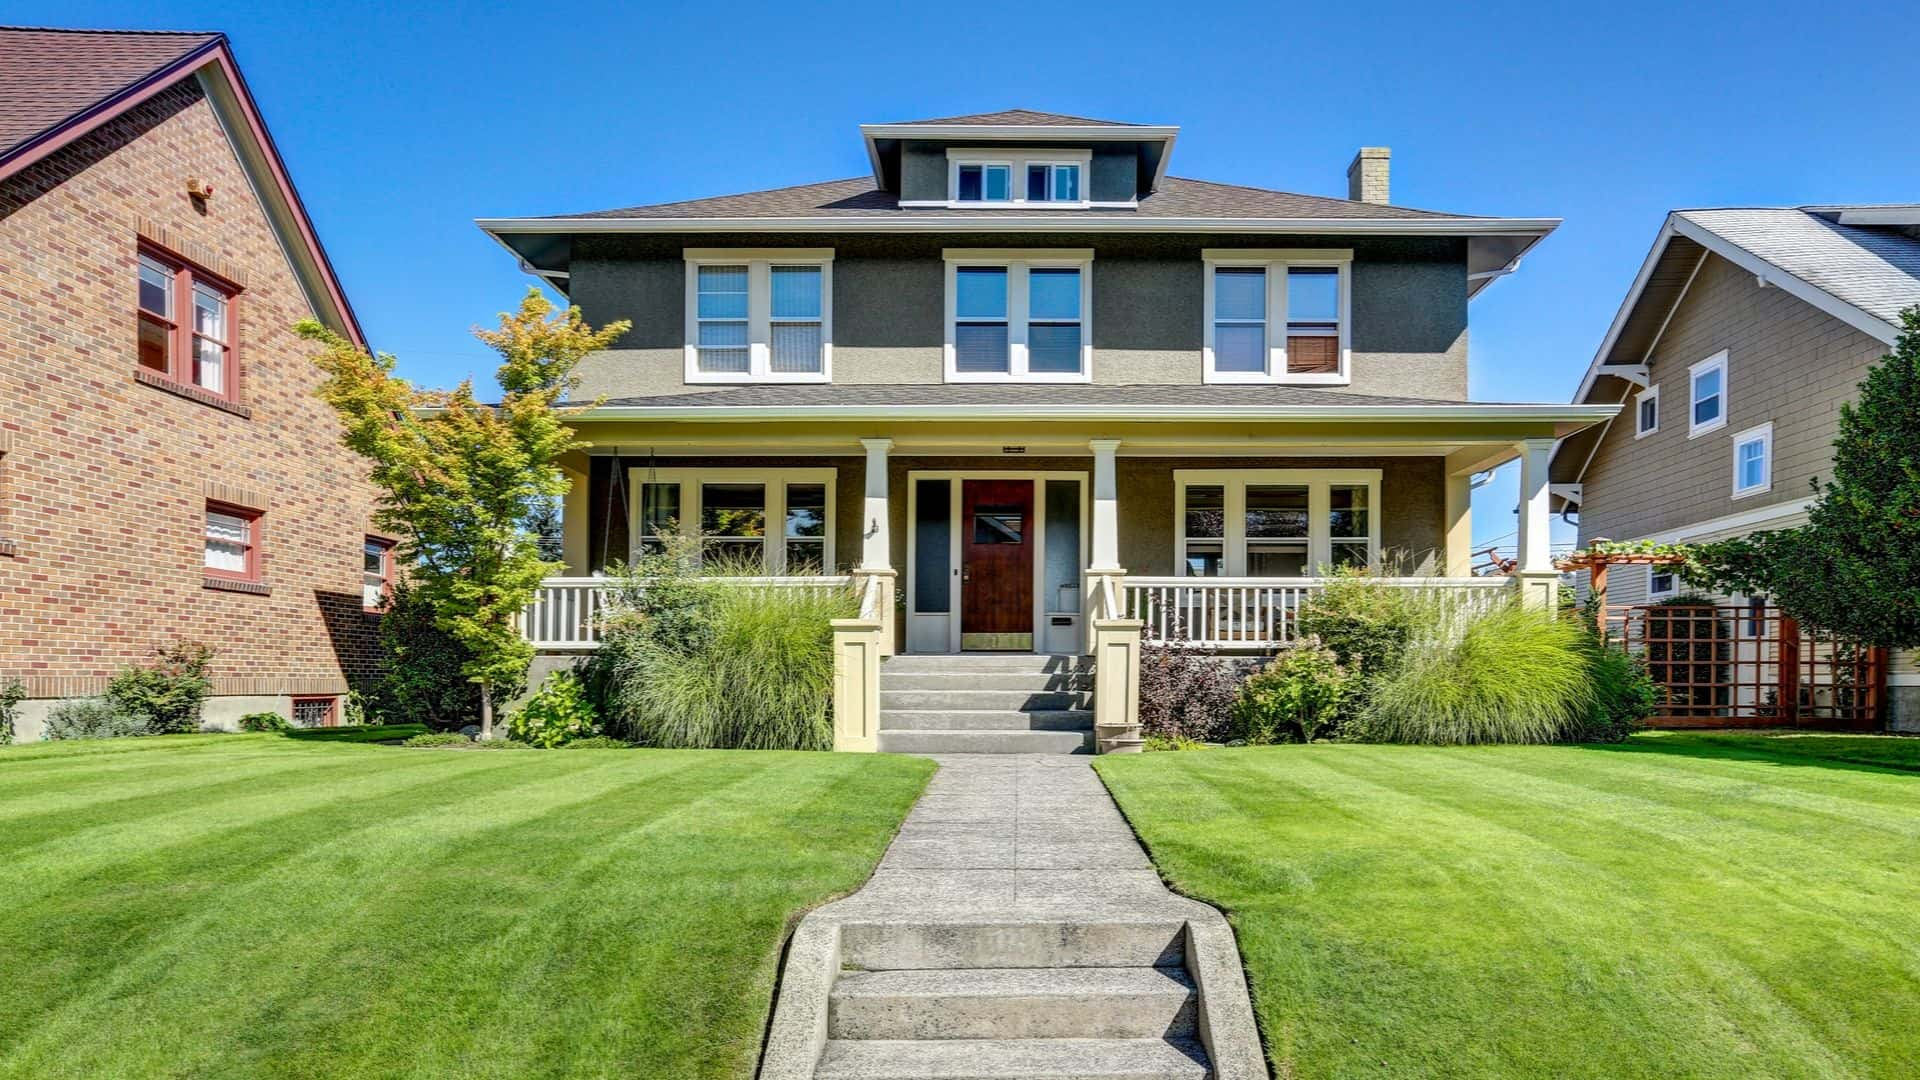 9 Ideas For Curb Appeal Under $500